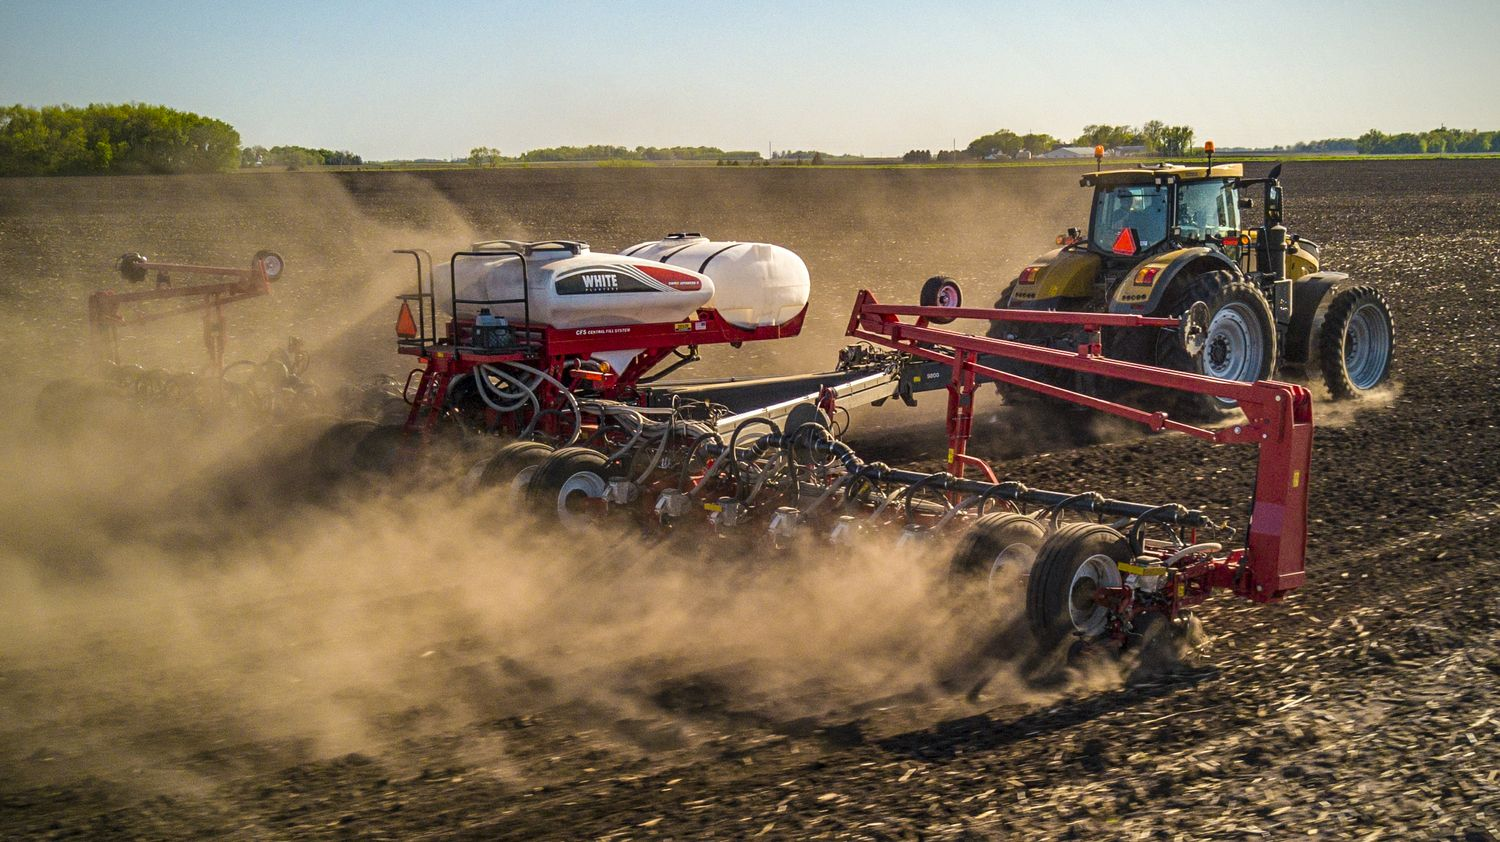 AGCO Introduces New White Planters 9500VER and 9700VER  Precision Planting-ready Toolbars